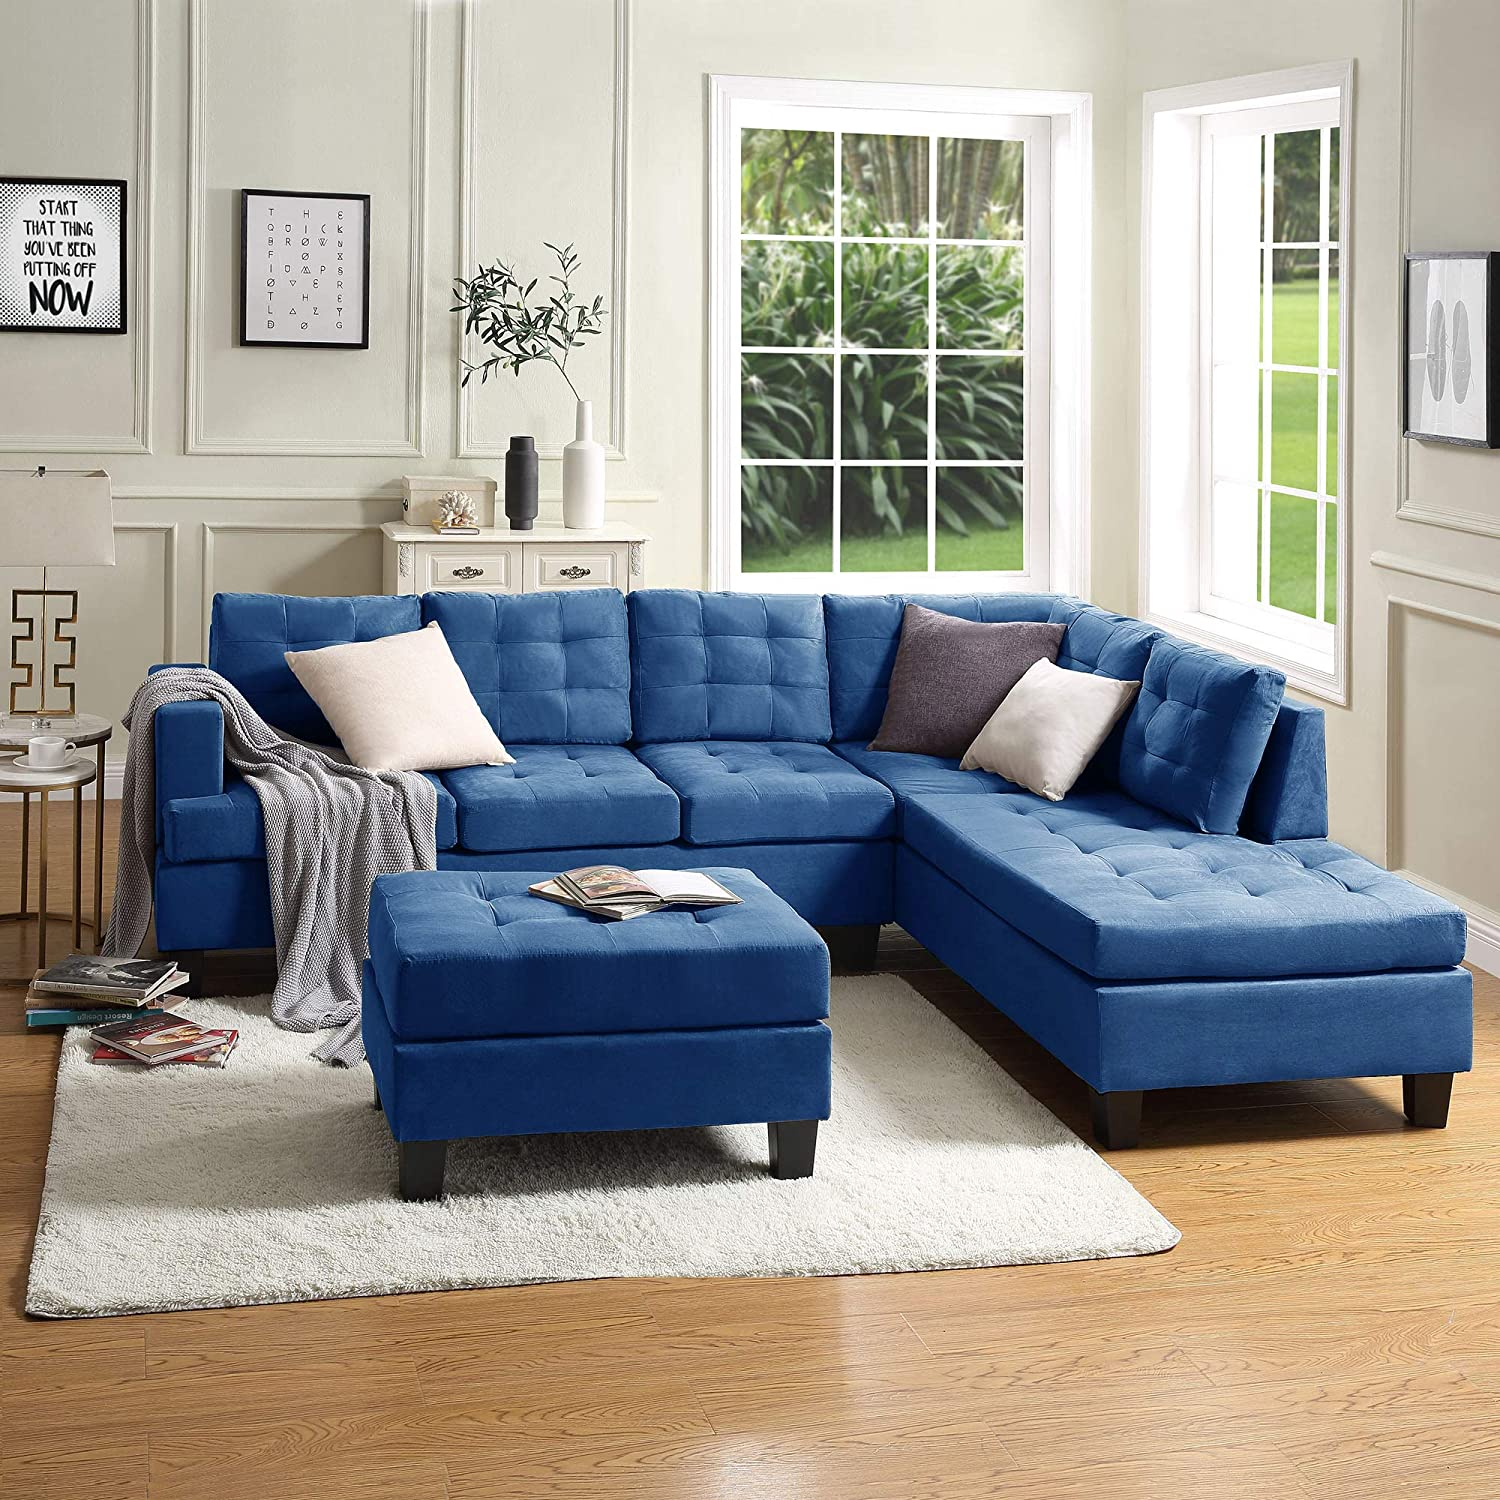 Meritline Fabric Sectional Couch For Living Room 4 Seater Sofa Set L Shaped Sofa With Tufted Storage Ottoman And Chaise For Small Space Use Blue Furniture Decor